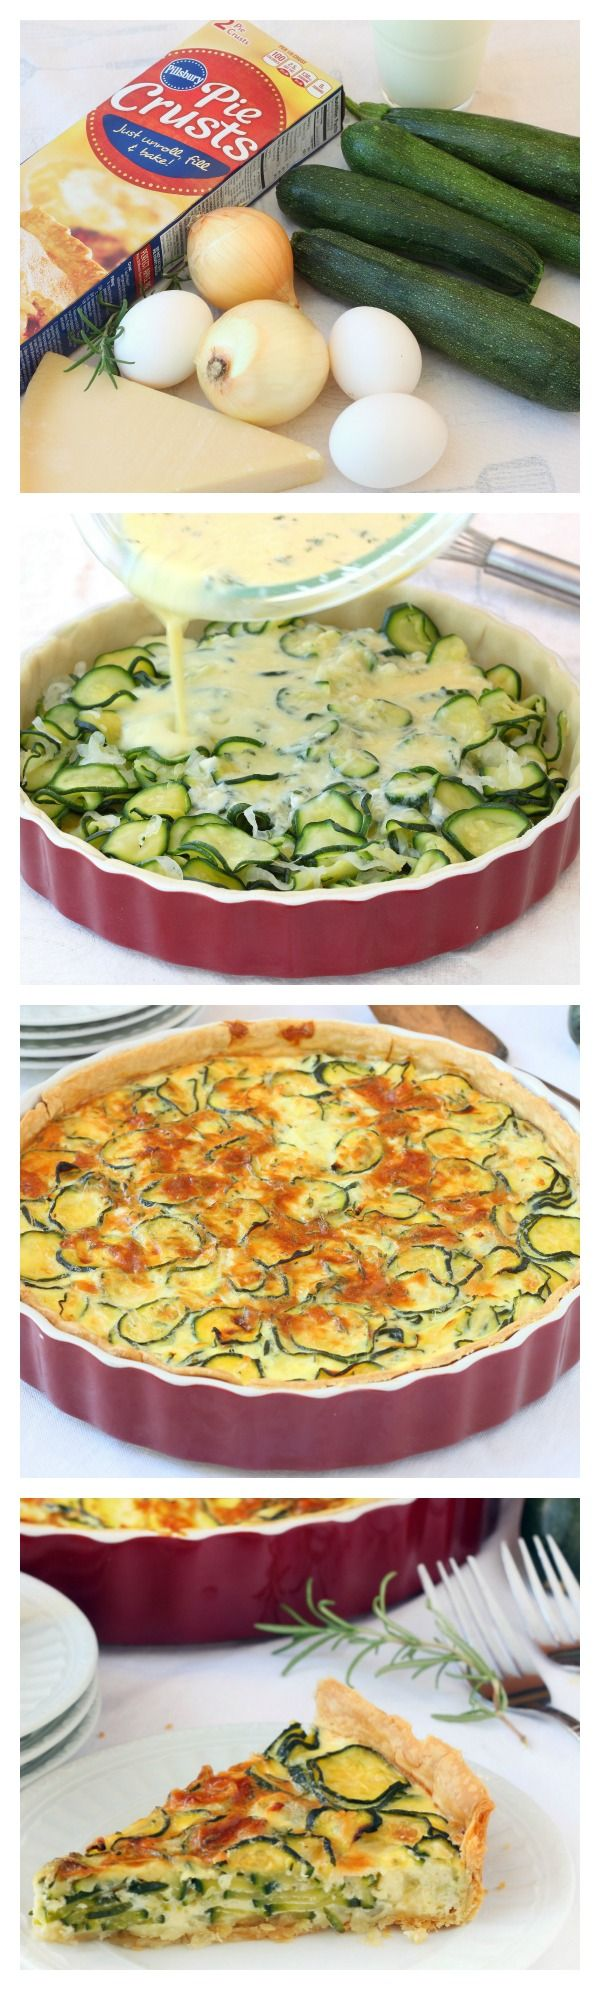 Use up summer zucchini in this savory make-ahead veggie pie! @roxanasbaking